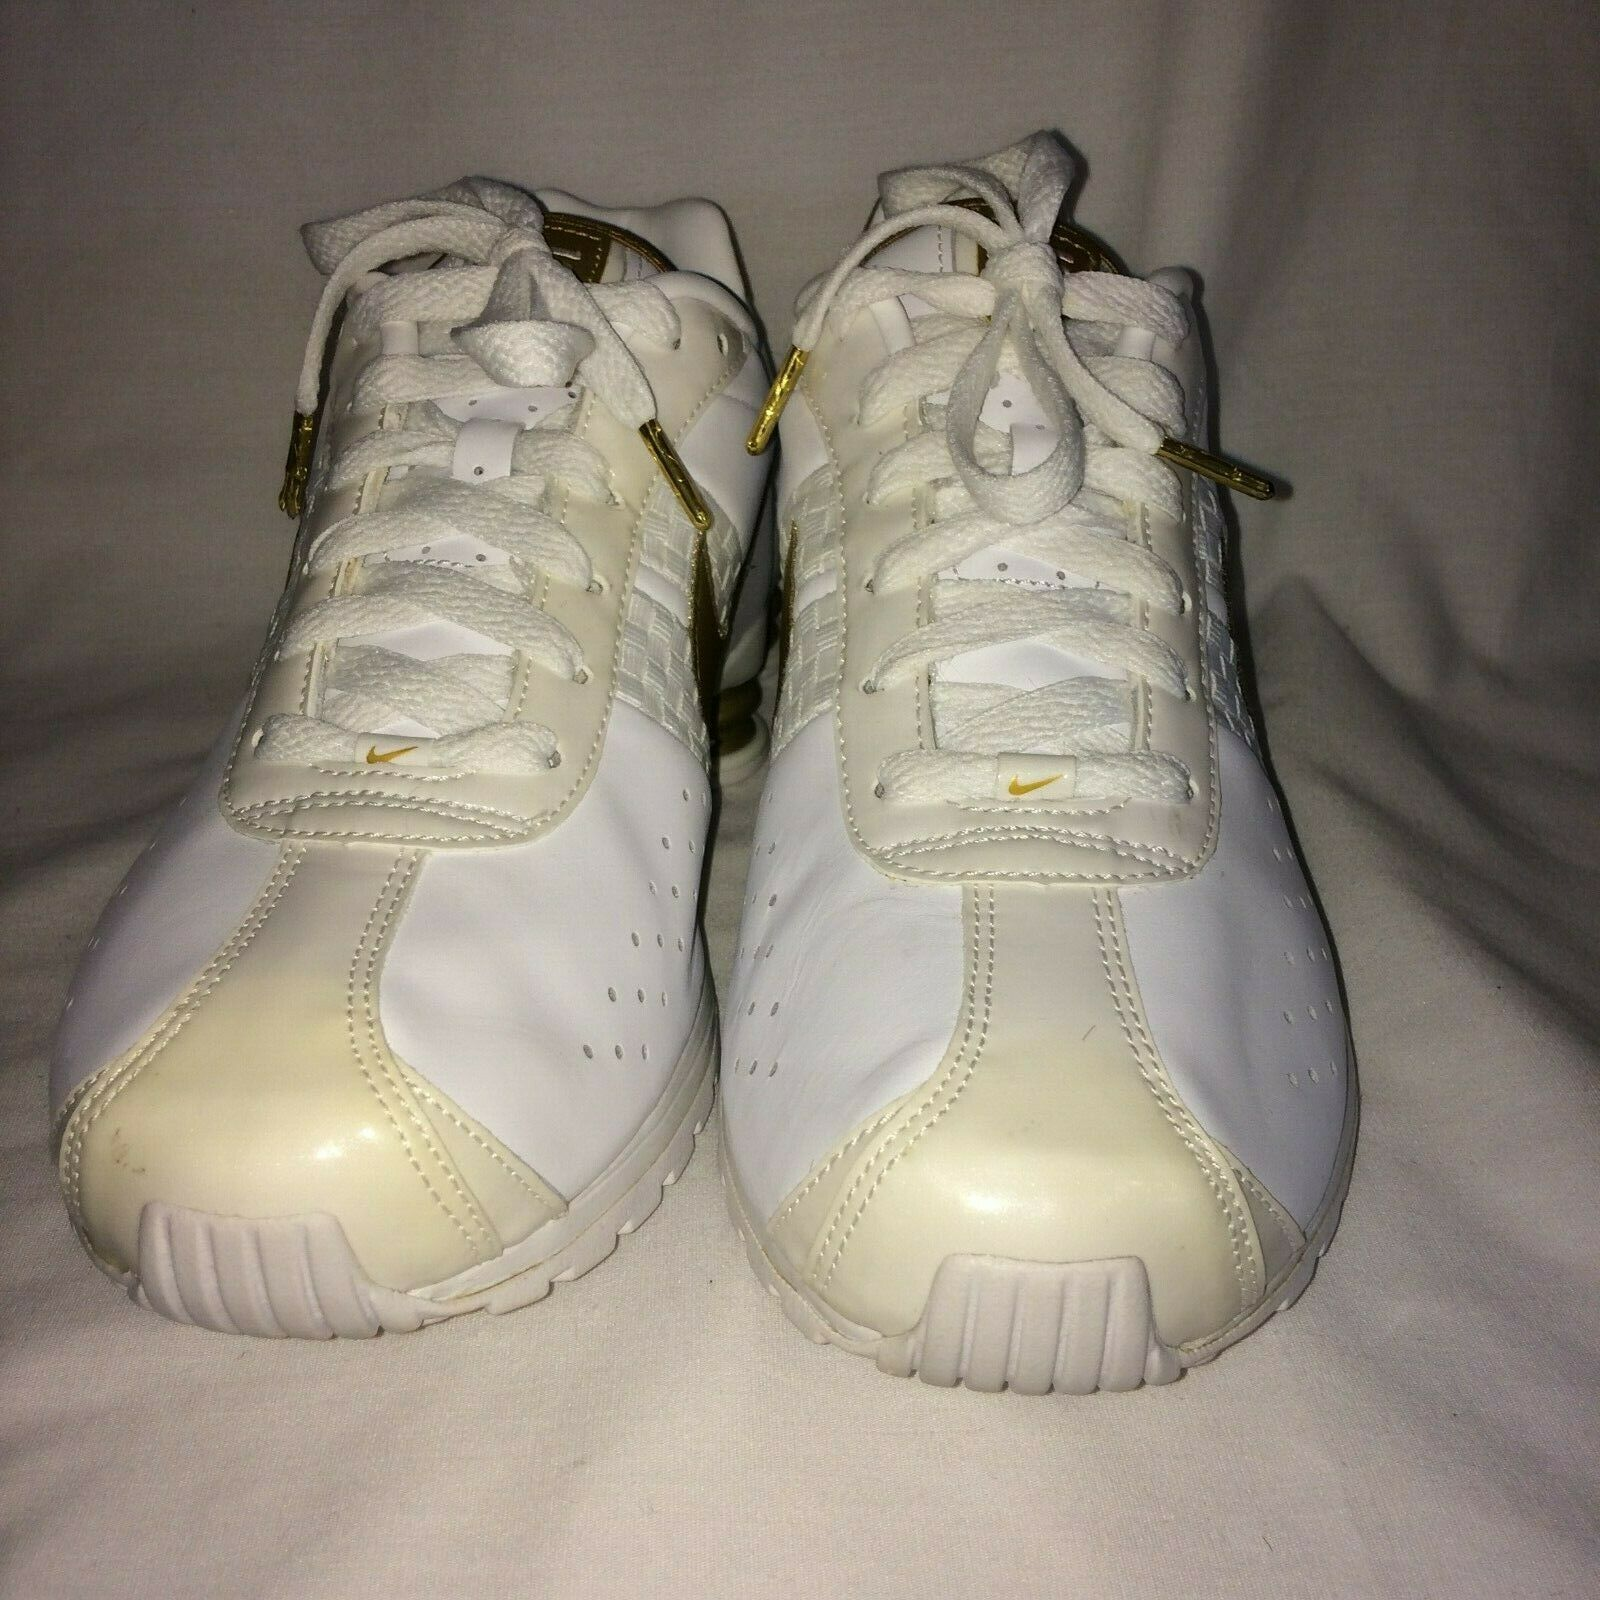 Nike14 Women's Size 11 Athletic  shoes White gold NWOT running